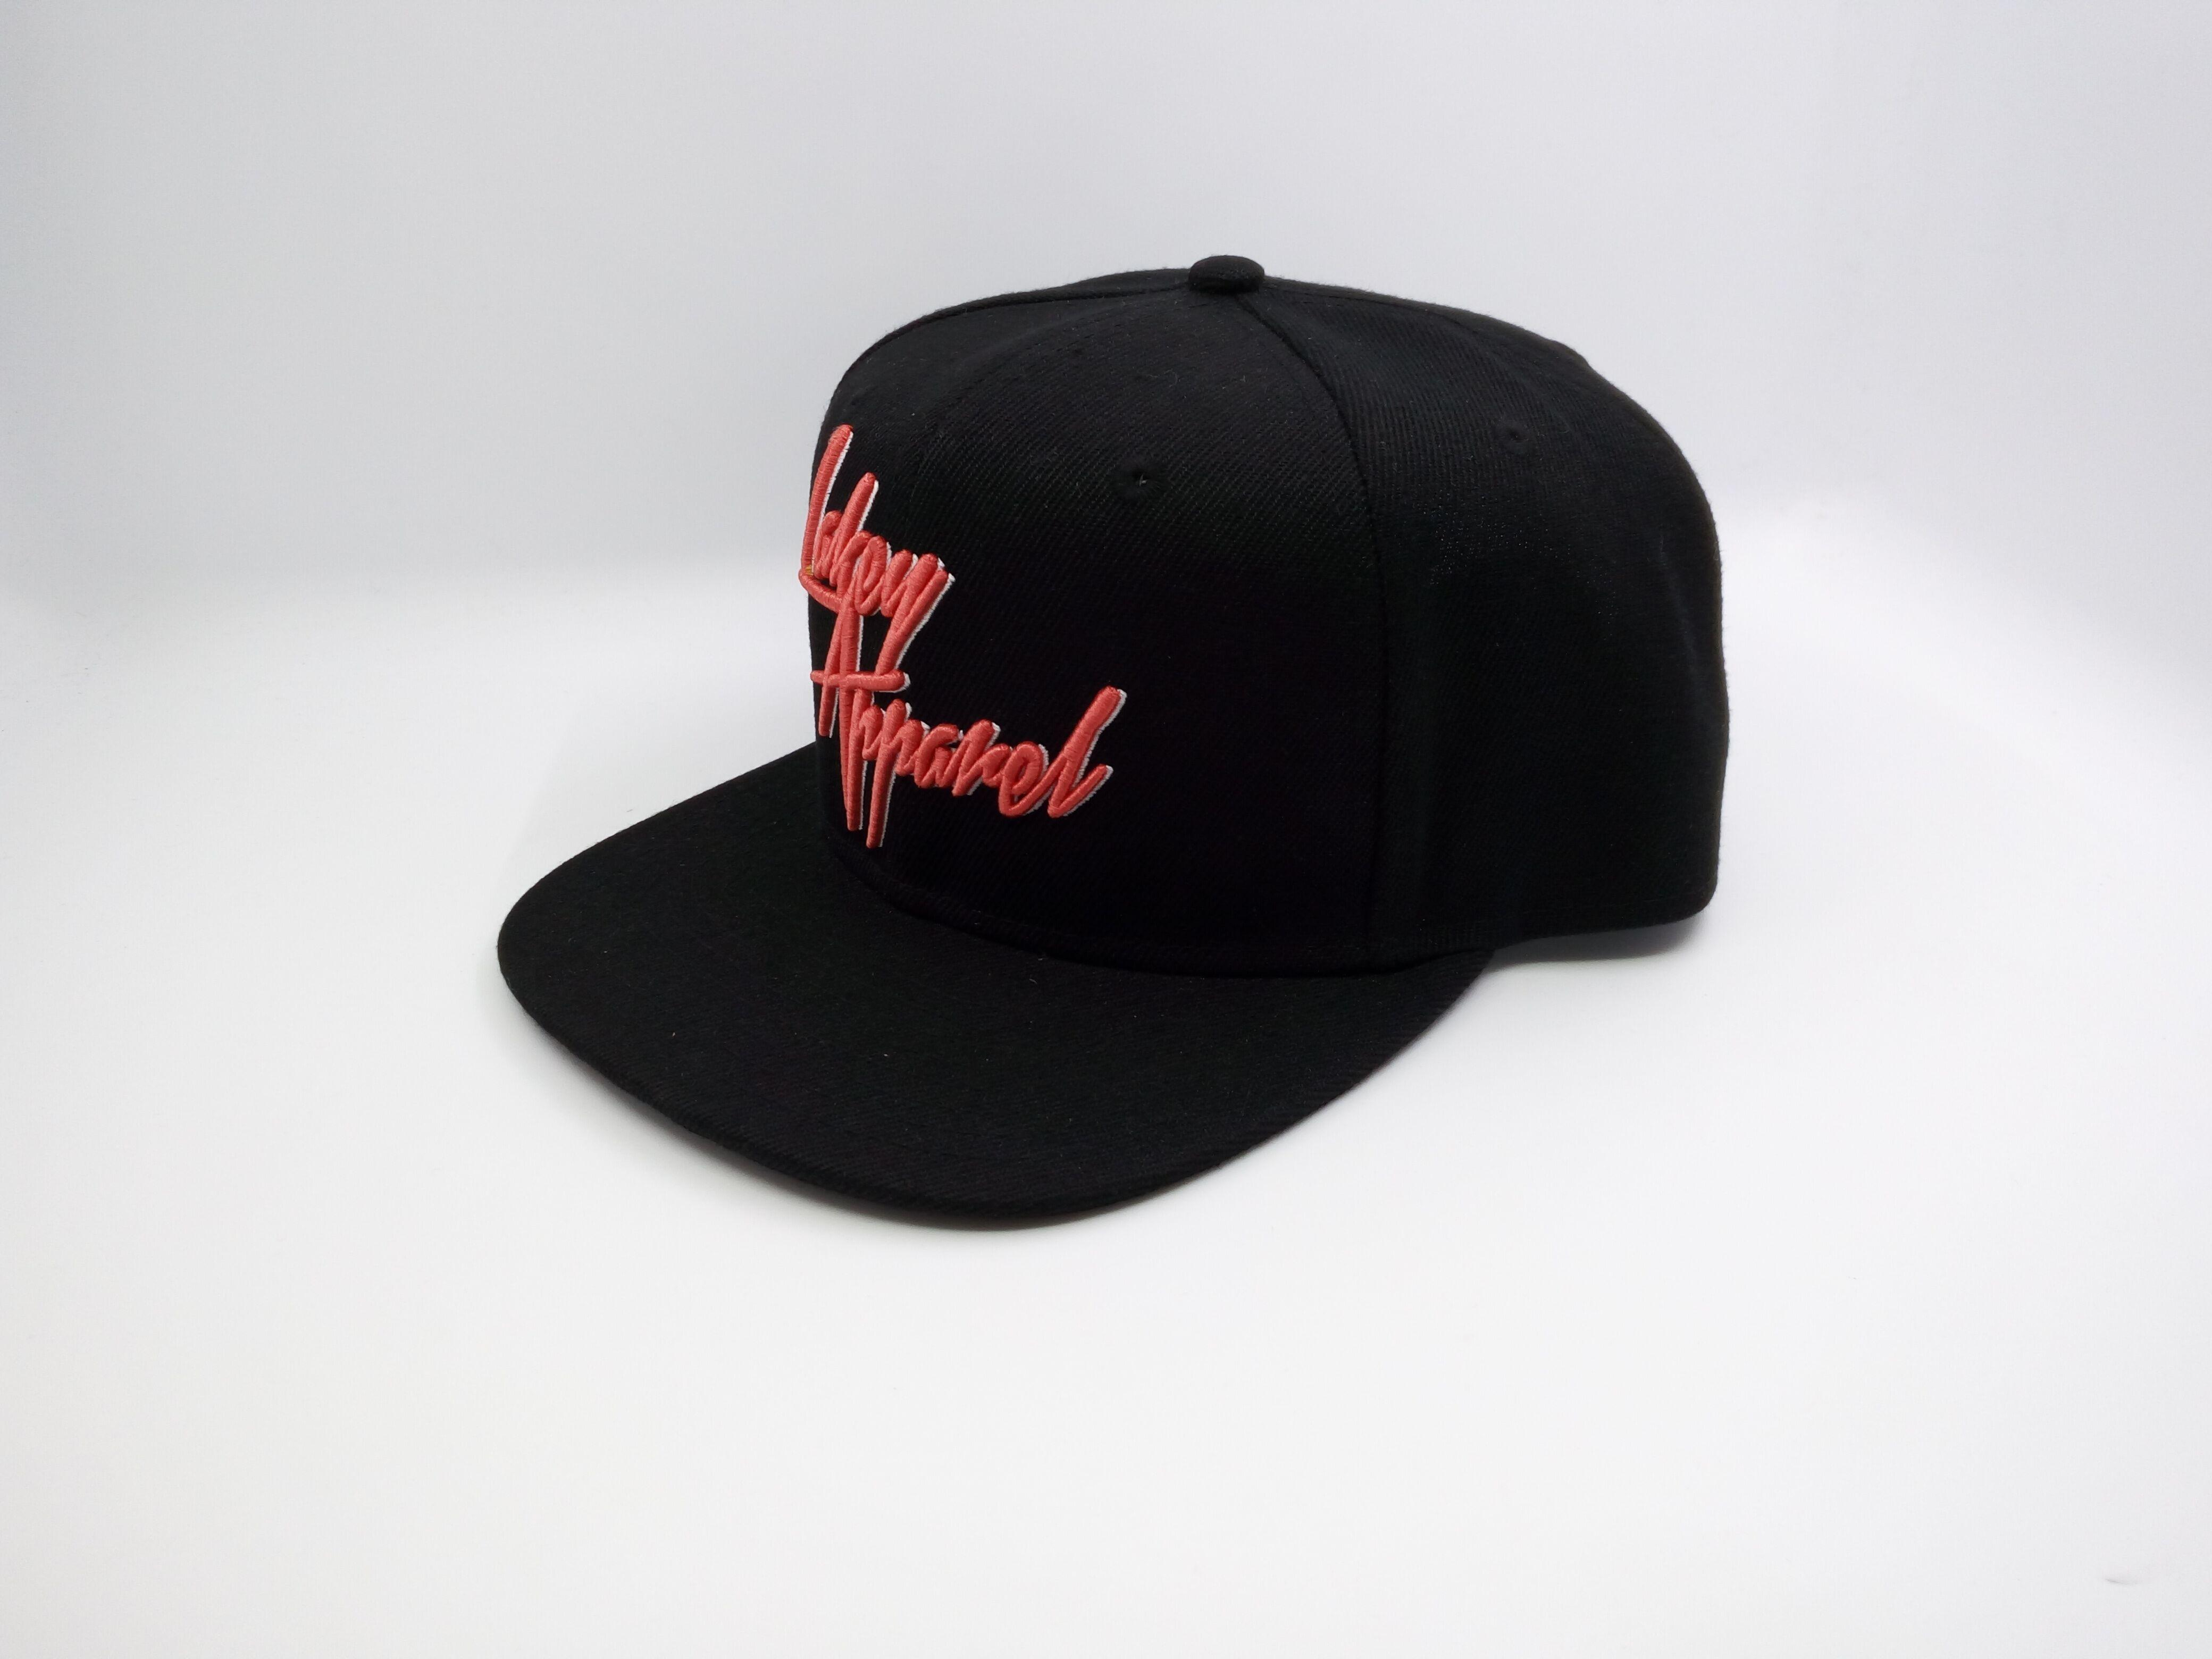 Main Product Wholesale Black 6 panel Embroidery Snapback Cap Flat Brim Hip Hop Cap Manufactures Custom Caps And Hats